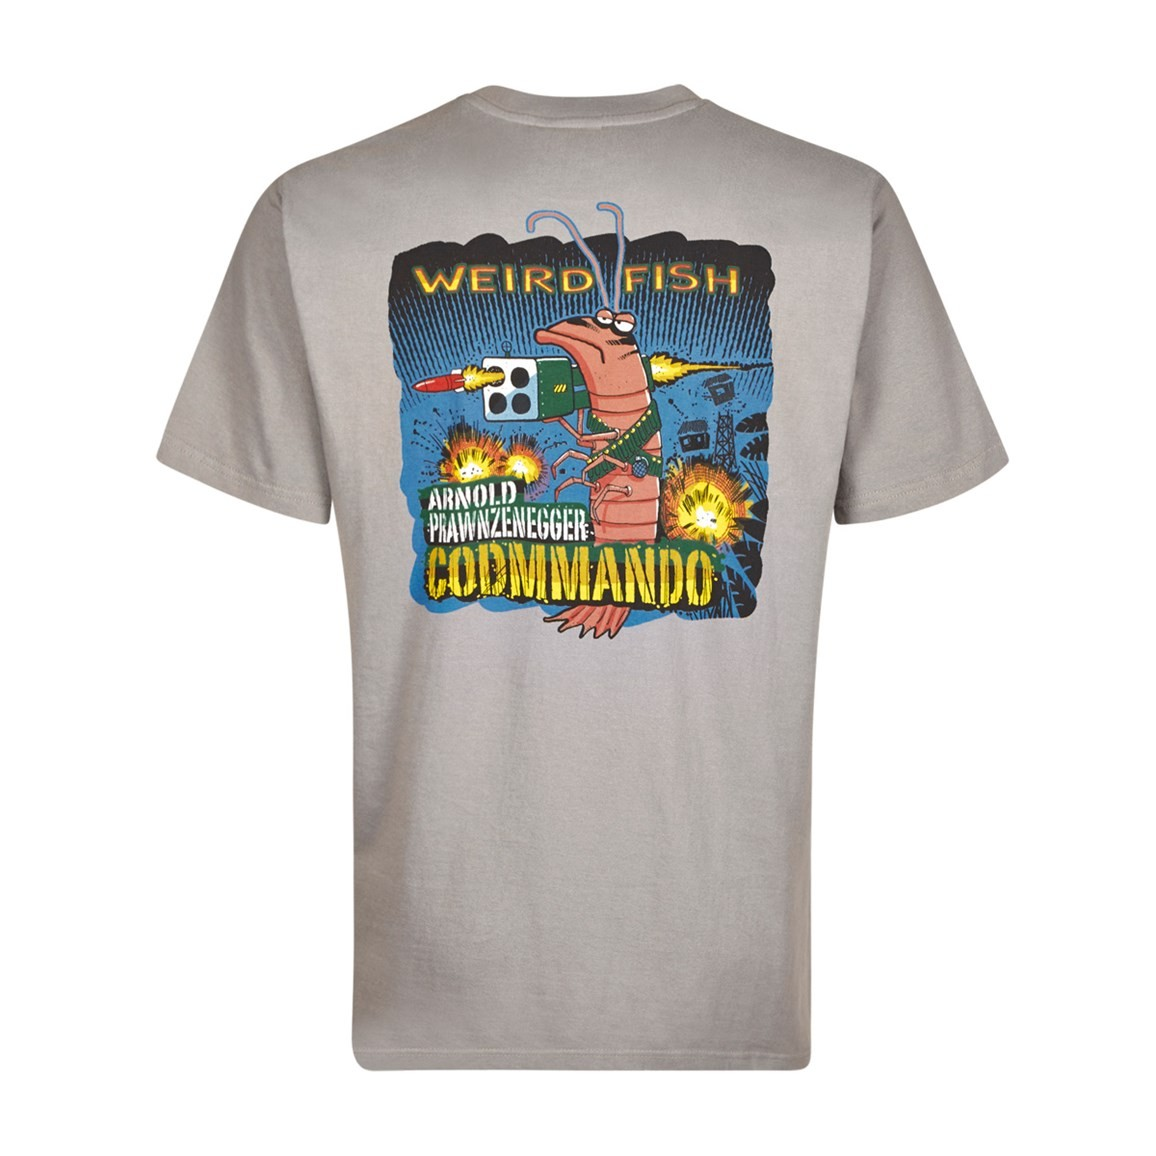 Weird Fish Codmmando Printed Artist T-Shirt Frost Grey